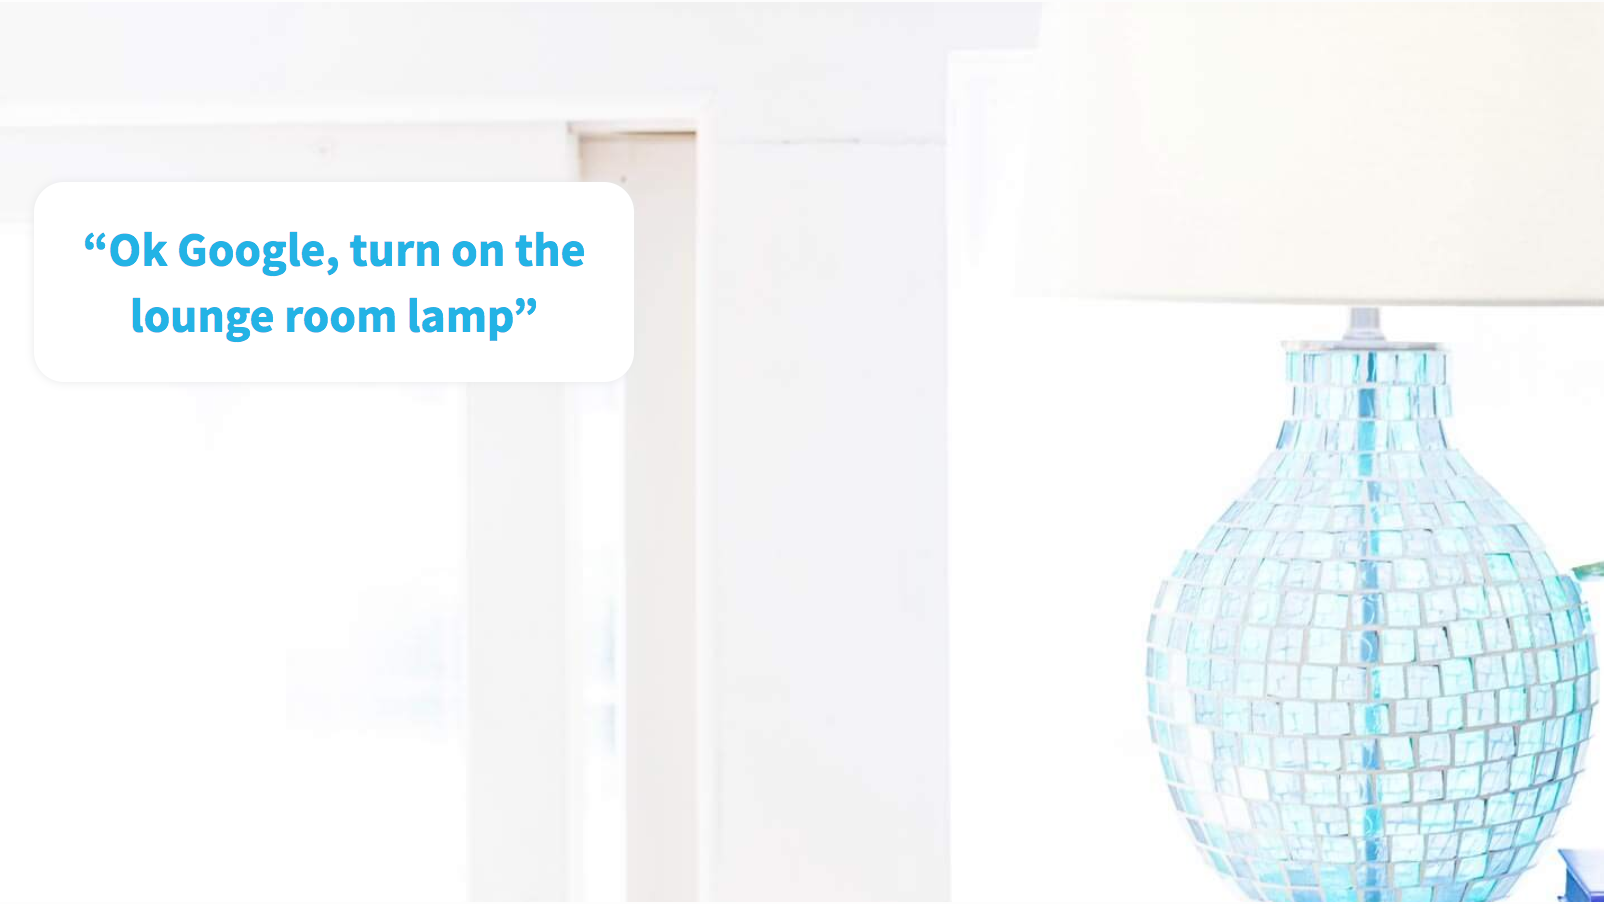 Infographic of Google turning on a lamp